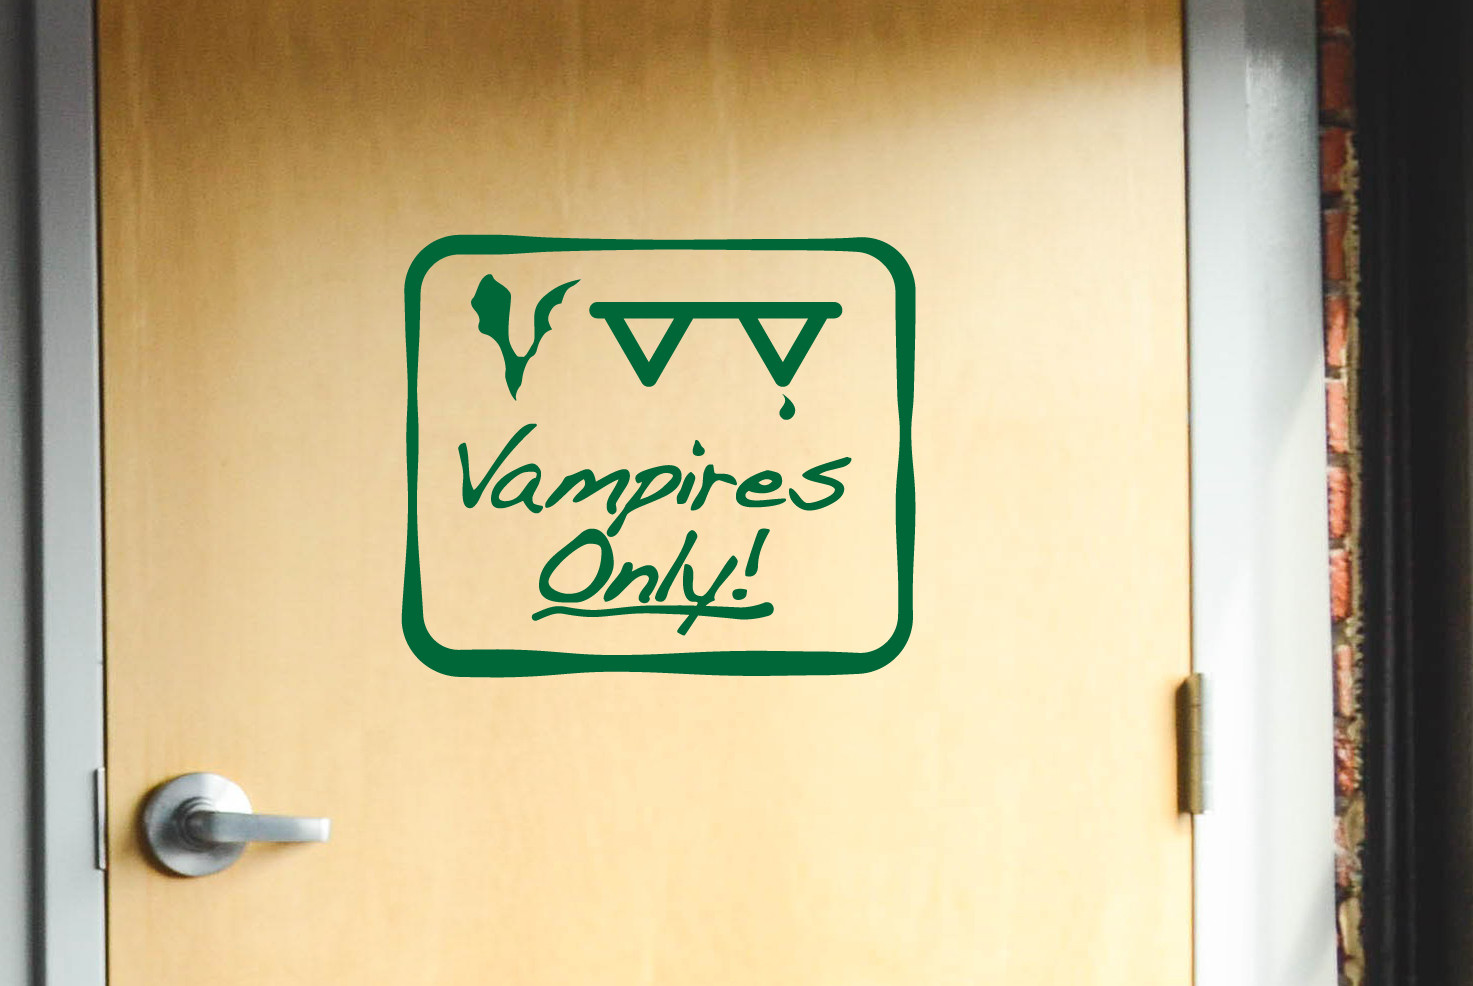 Vampires Only! | Halloween | Decal - Wall Art Company